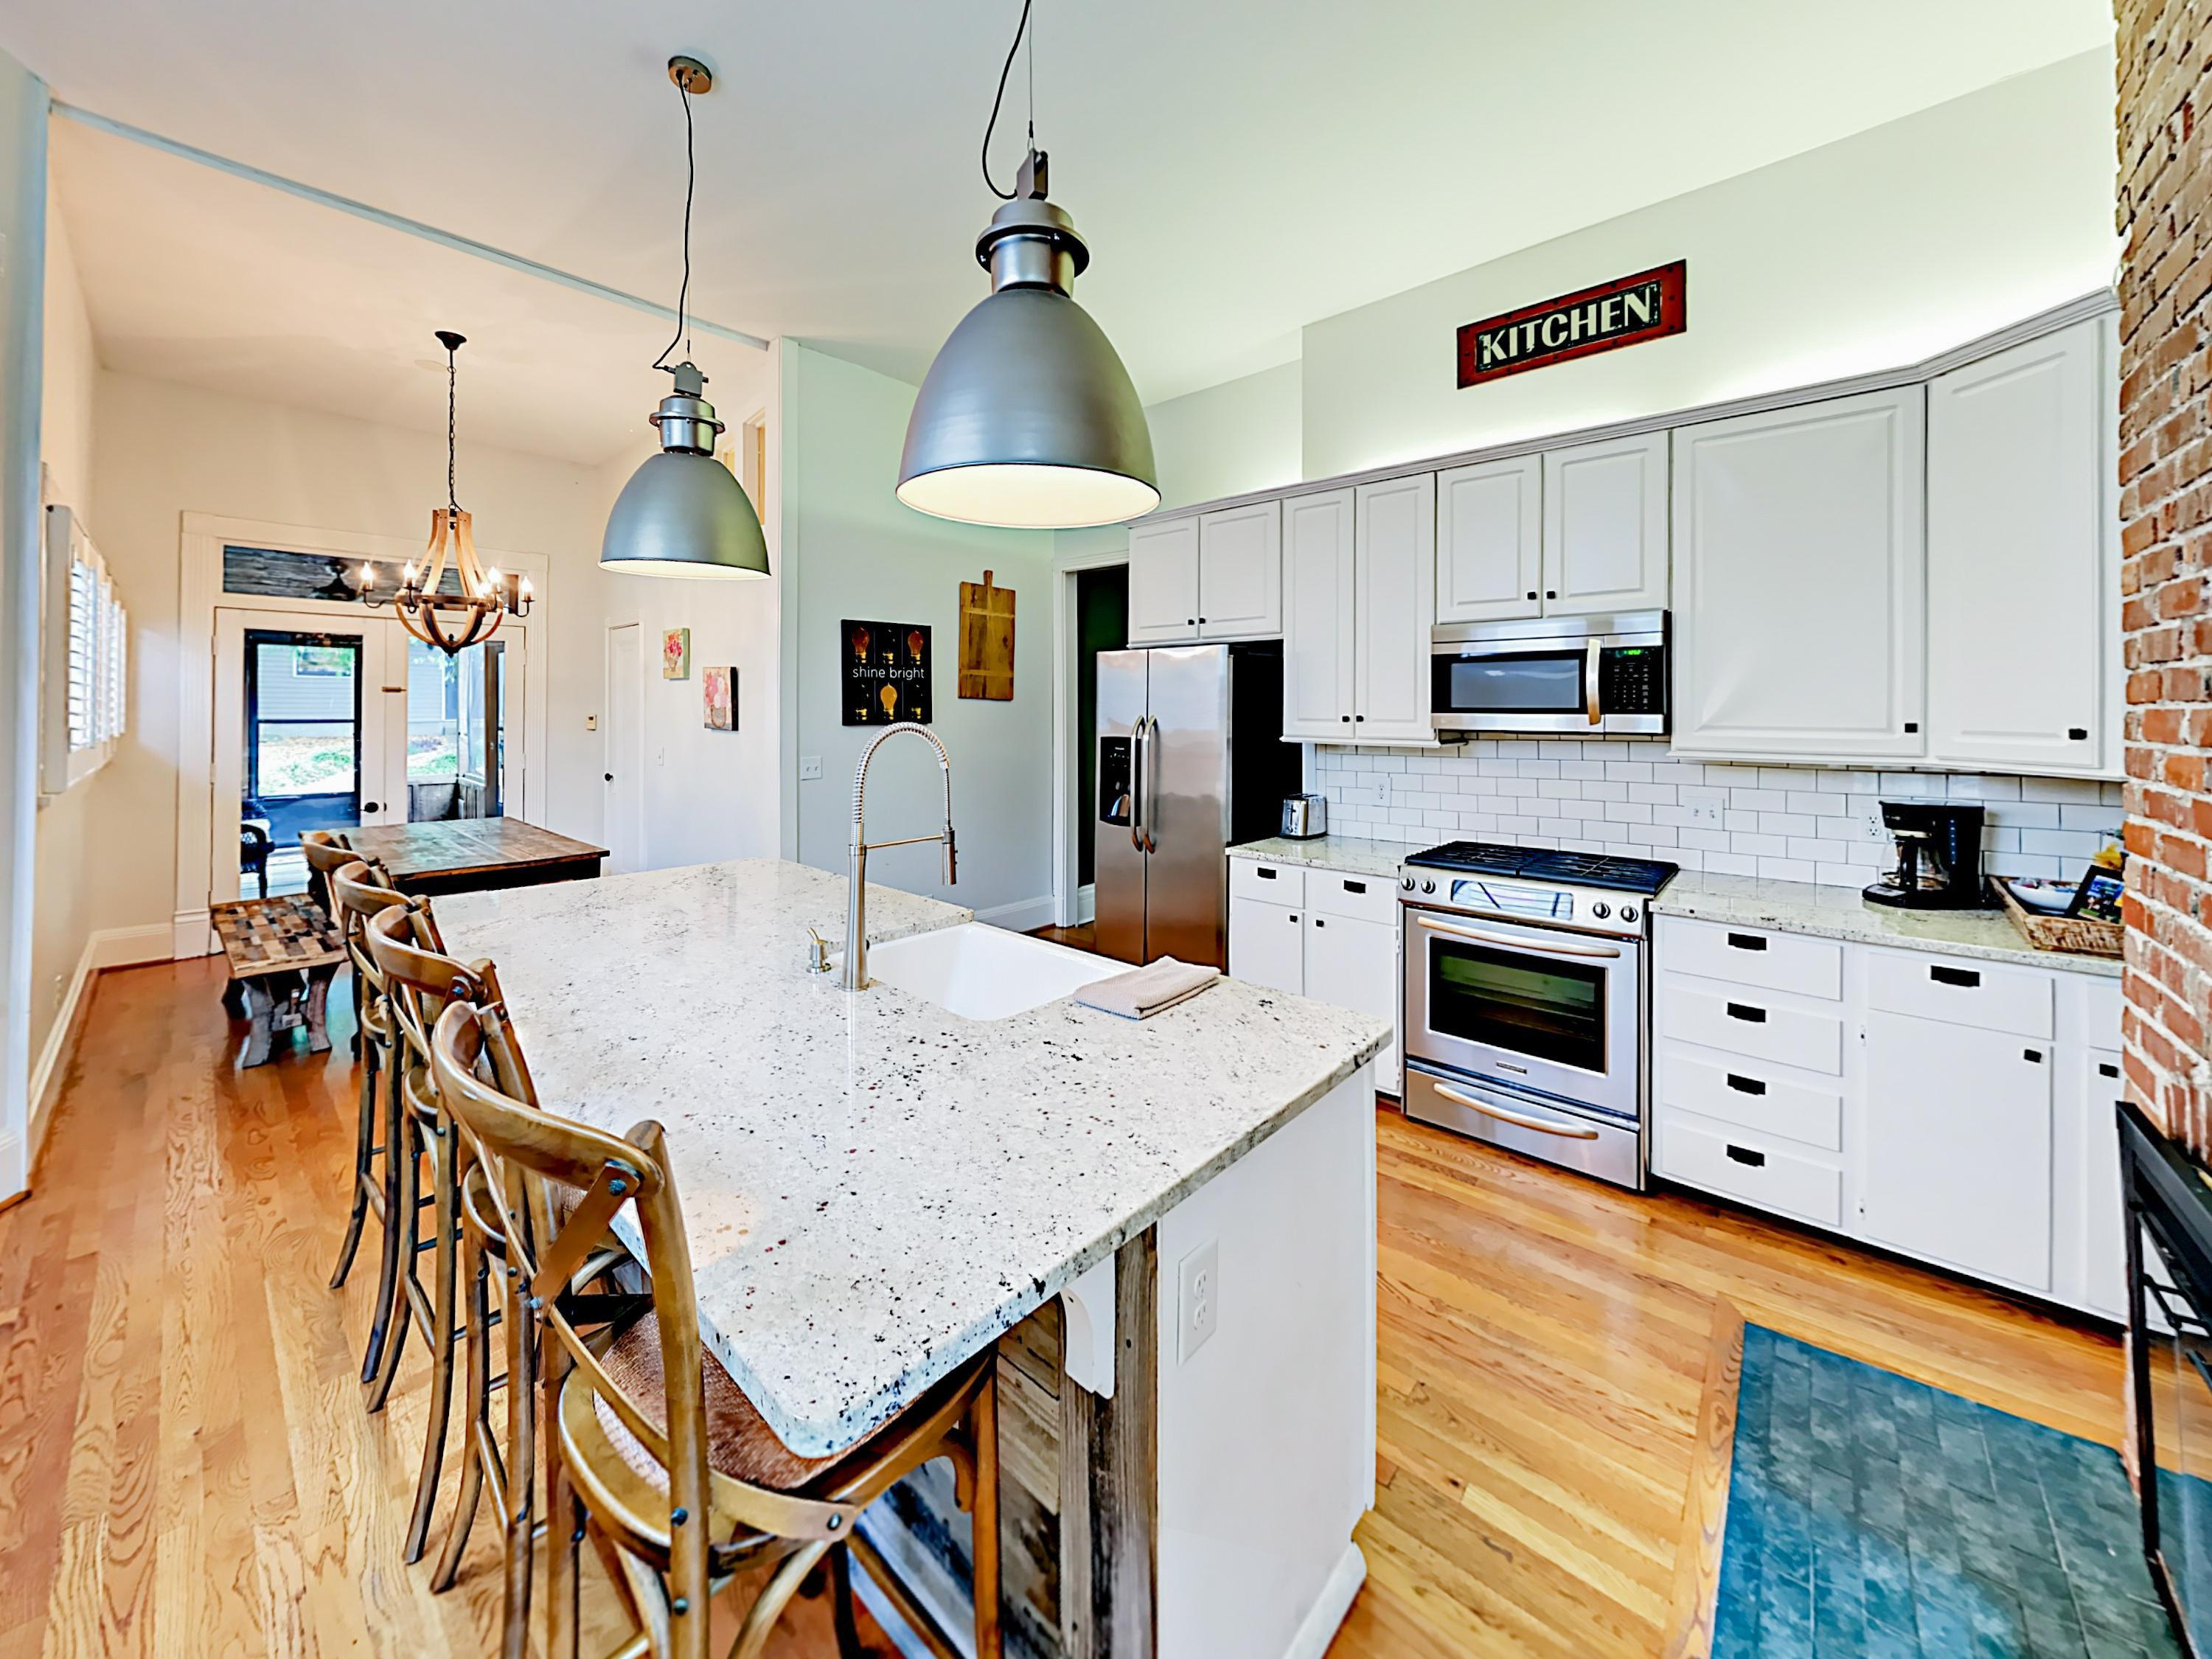 The kitchen features exquisite granite countertops and stainless steel appliances.